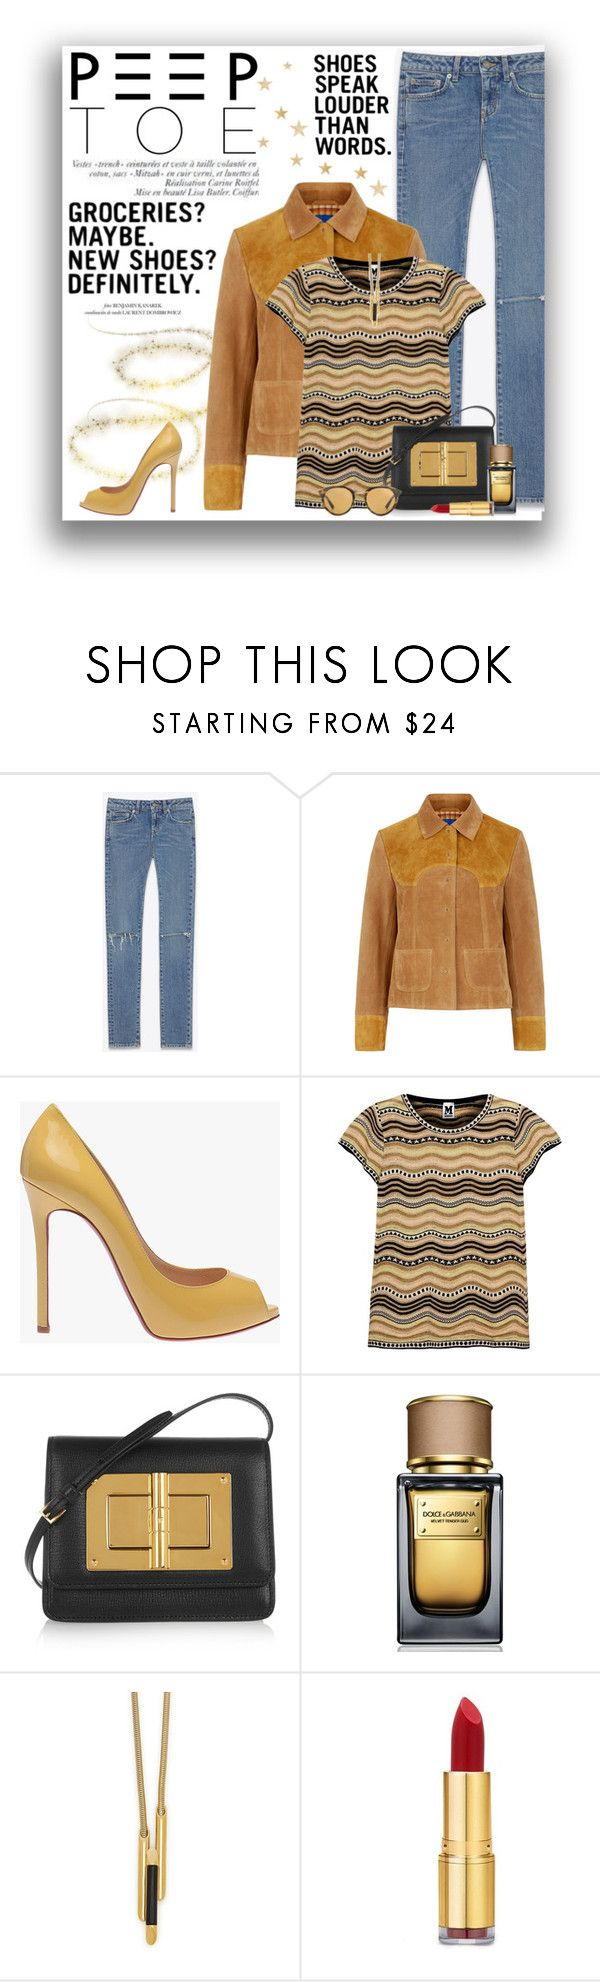 """""""Peep Toe"""" by gailermels ❤ liked on Polyvore featuring Yves Saint Laurent, M.i.h Jeans, Christian Louboutin, M Missoni, Tom Ford, Dolce&Gabbana, Maiyet, Isaac Mizrahi, Oliver Peoples and Louis Vuitton"""